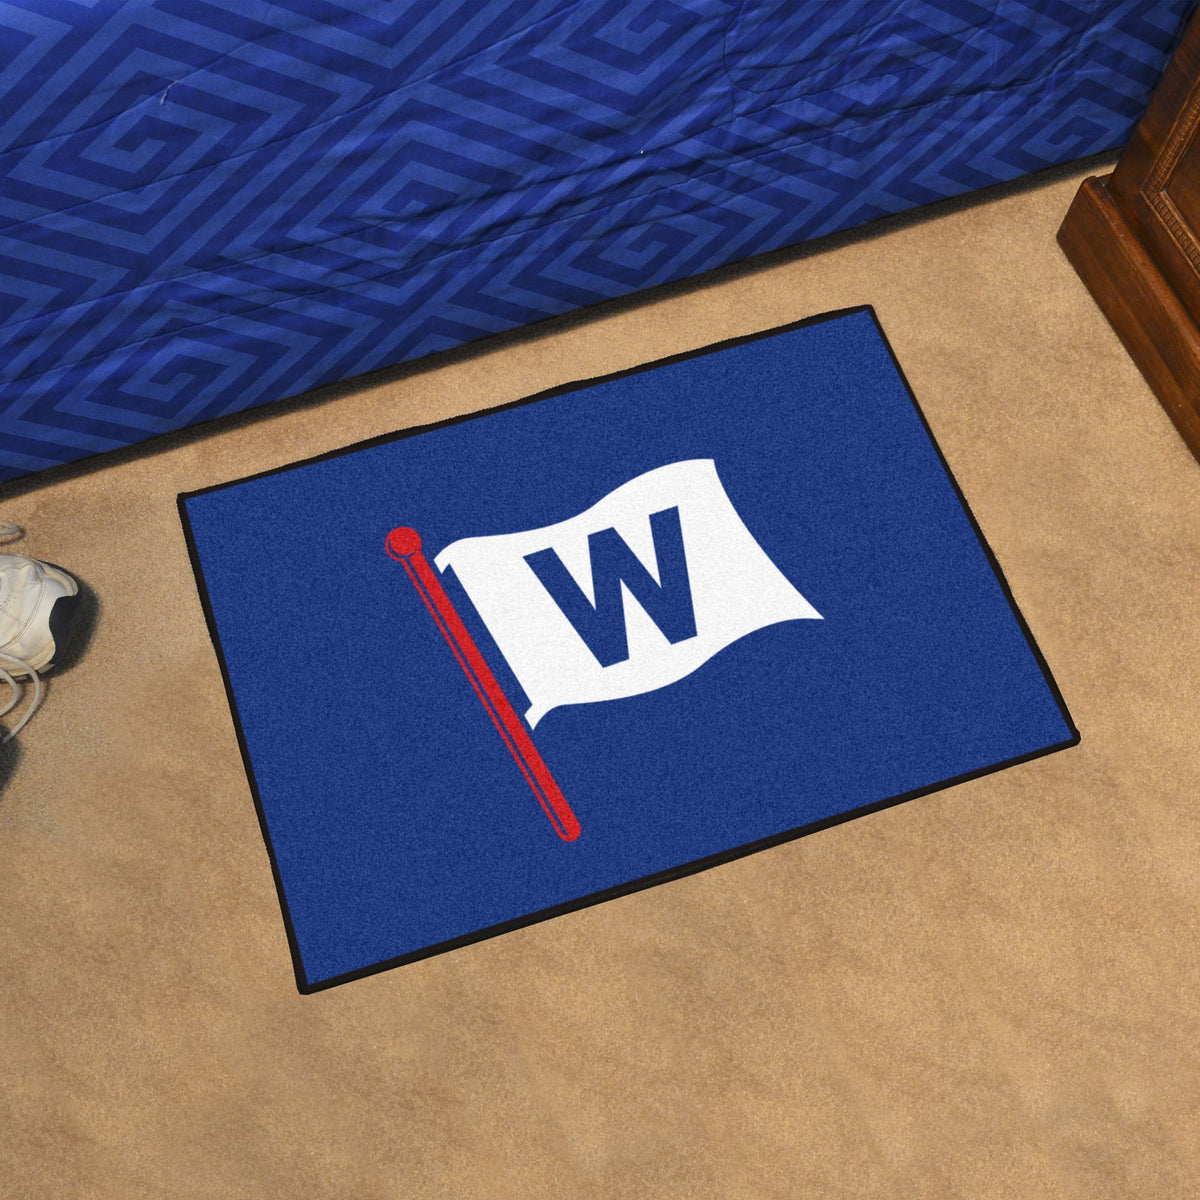 MLB - Starter Mat MLB Mats, Rectangular Mats, Starter Mat, MLB, Home Fan Mats Chicago Cubs 2